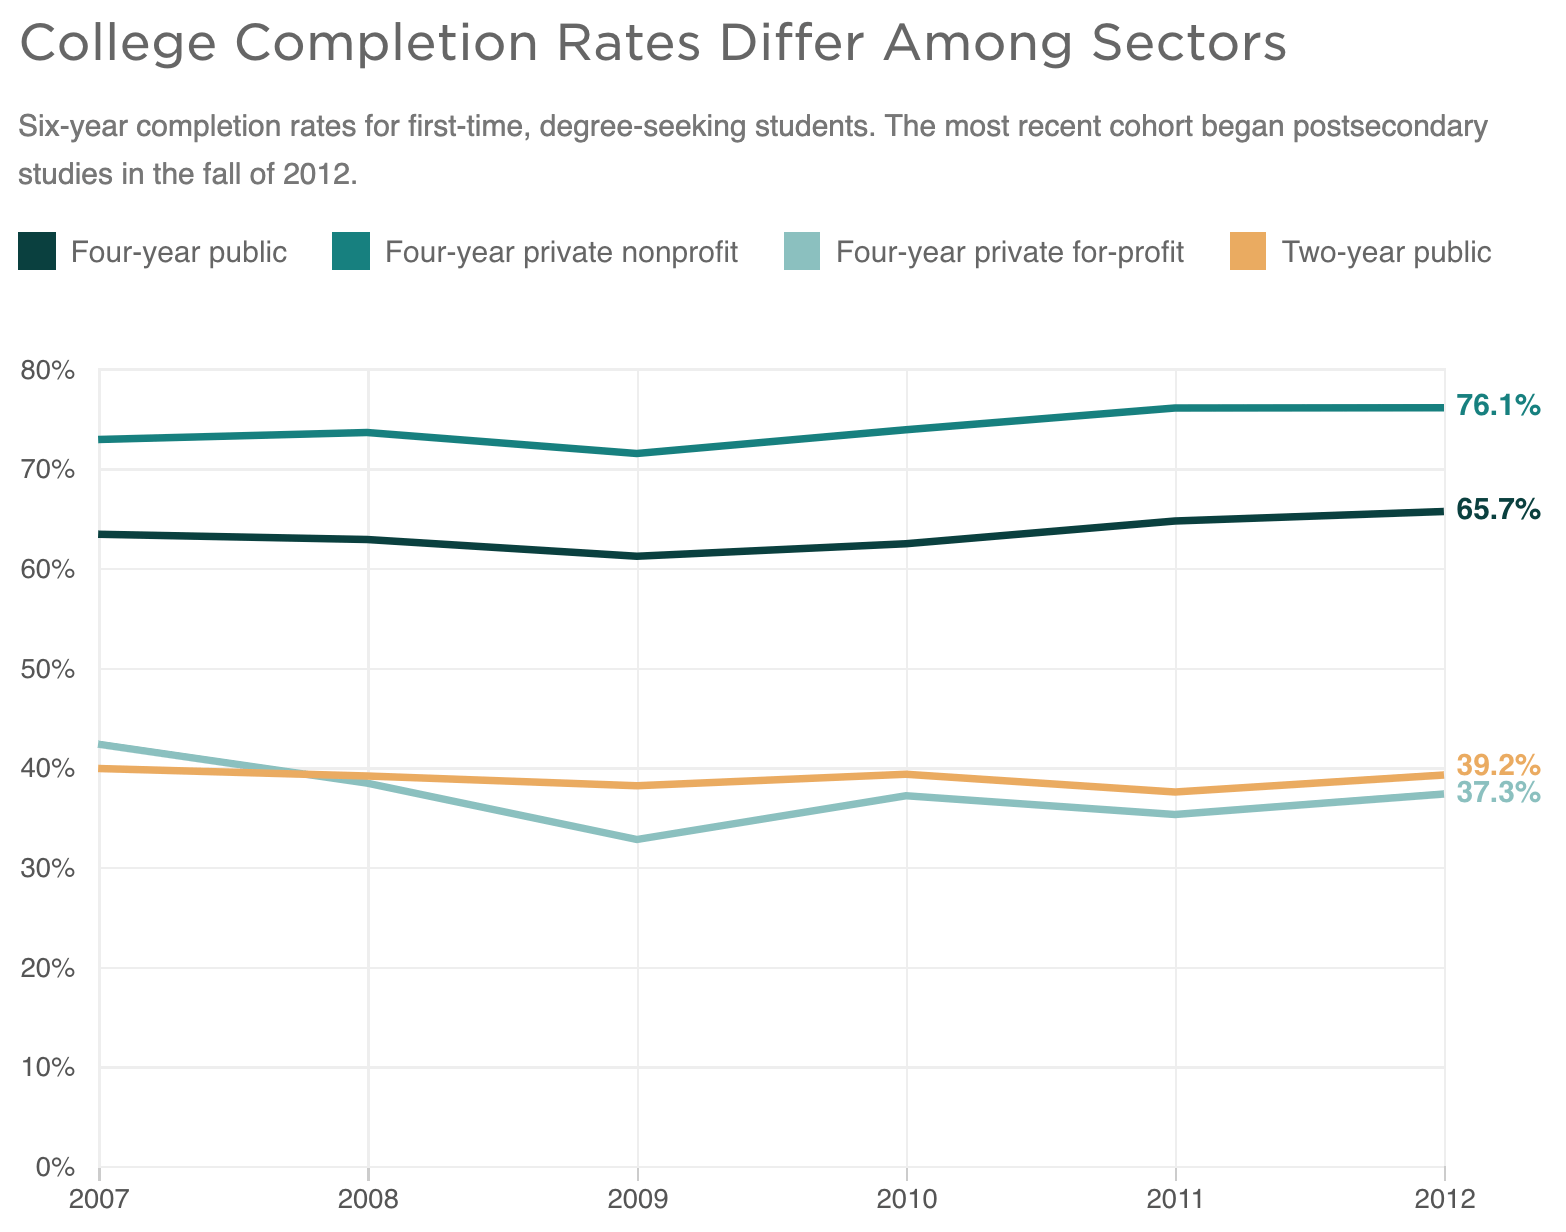 College Completion Rates Differ Among Sectors for Student Success